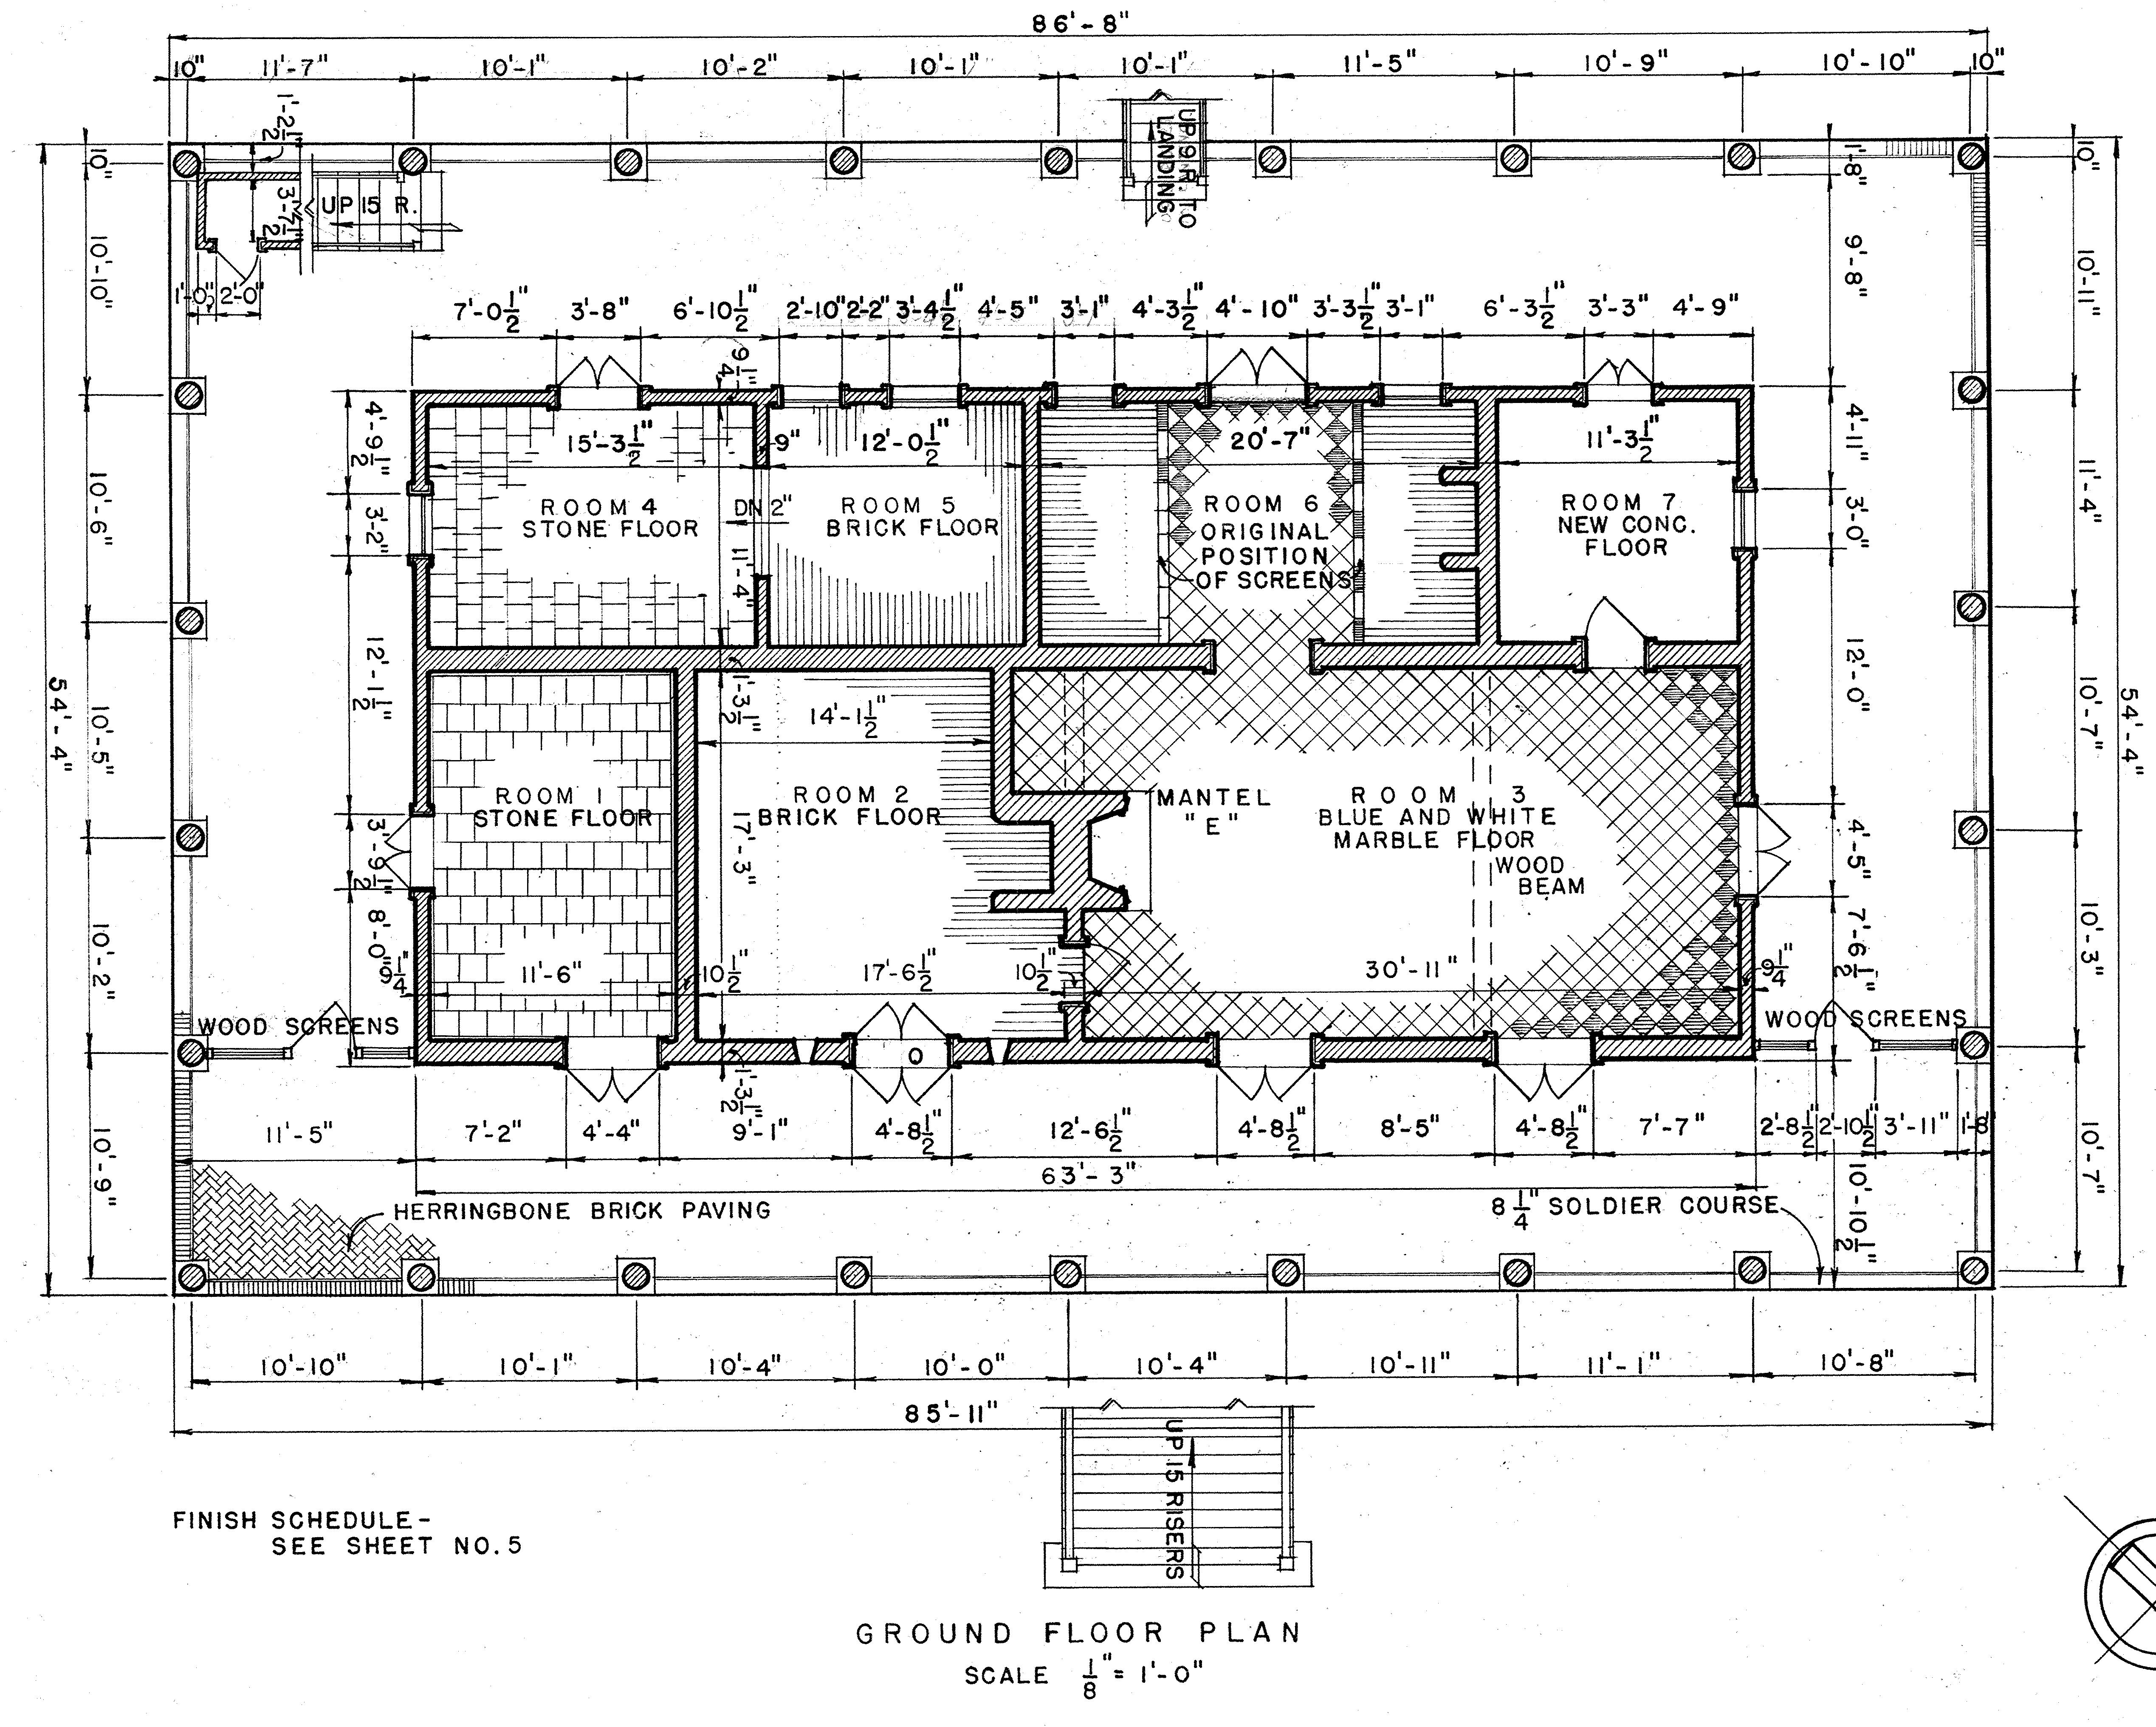 Homeplace basement floor plan flickr photo sharing Plantation house floor plans